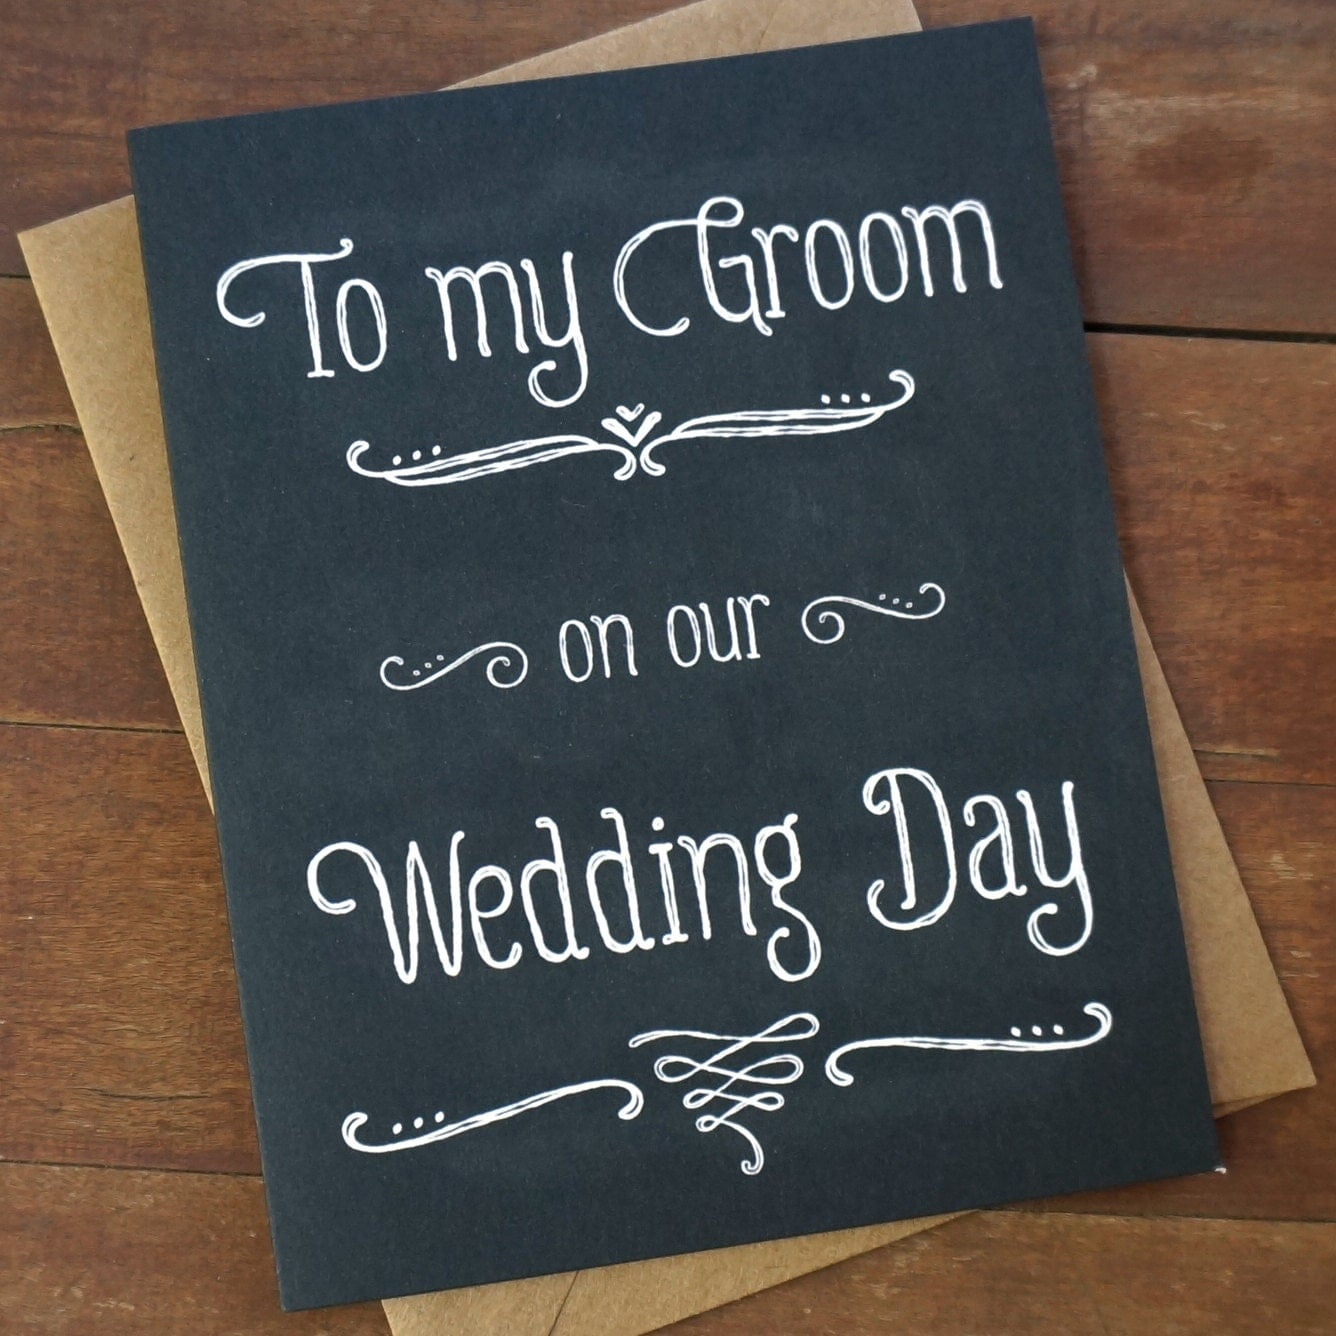 ... Wedding Day - Wedding Day Card - Groom Gift - Grooms gift from bride